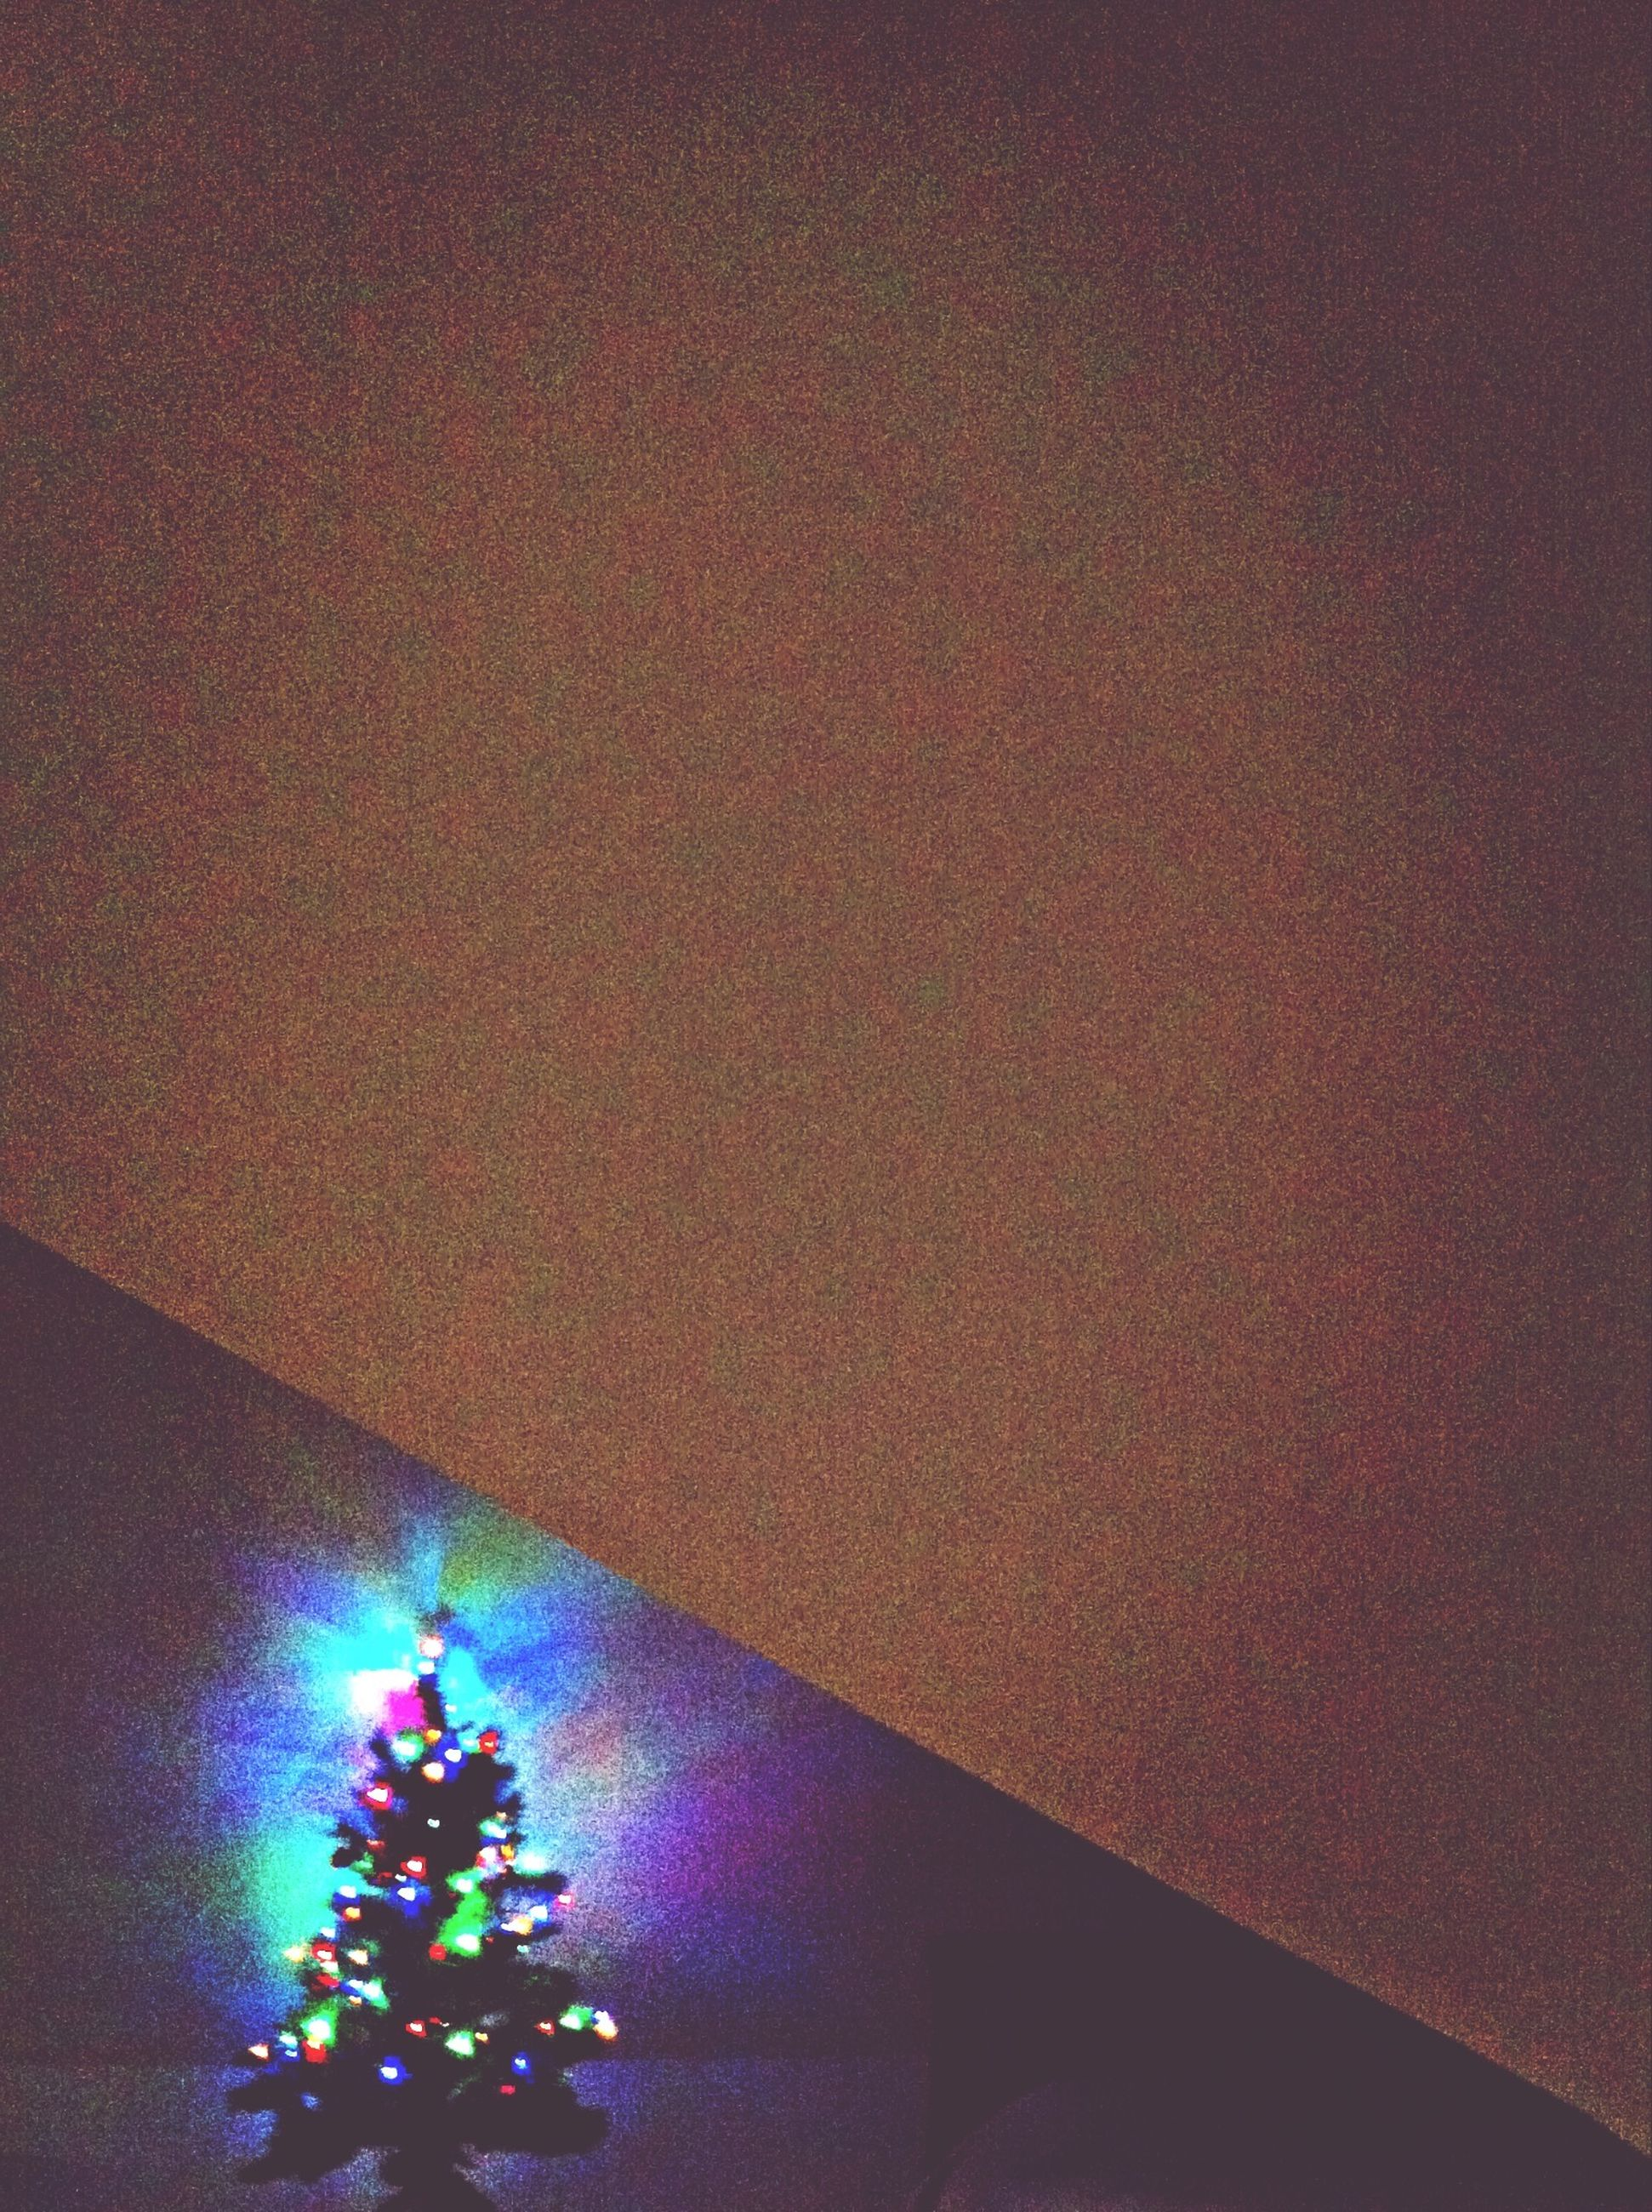 illuminated, indoors, lighting equipment, decoration, celebration, multi colored, light - natural phenomenon, night, low angle view, glowing, wall - building feature, no people, hanging, purple, high angle view, christmas decoration, christmas, pink color, decor, home interior